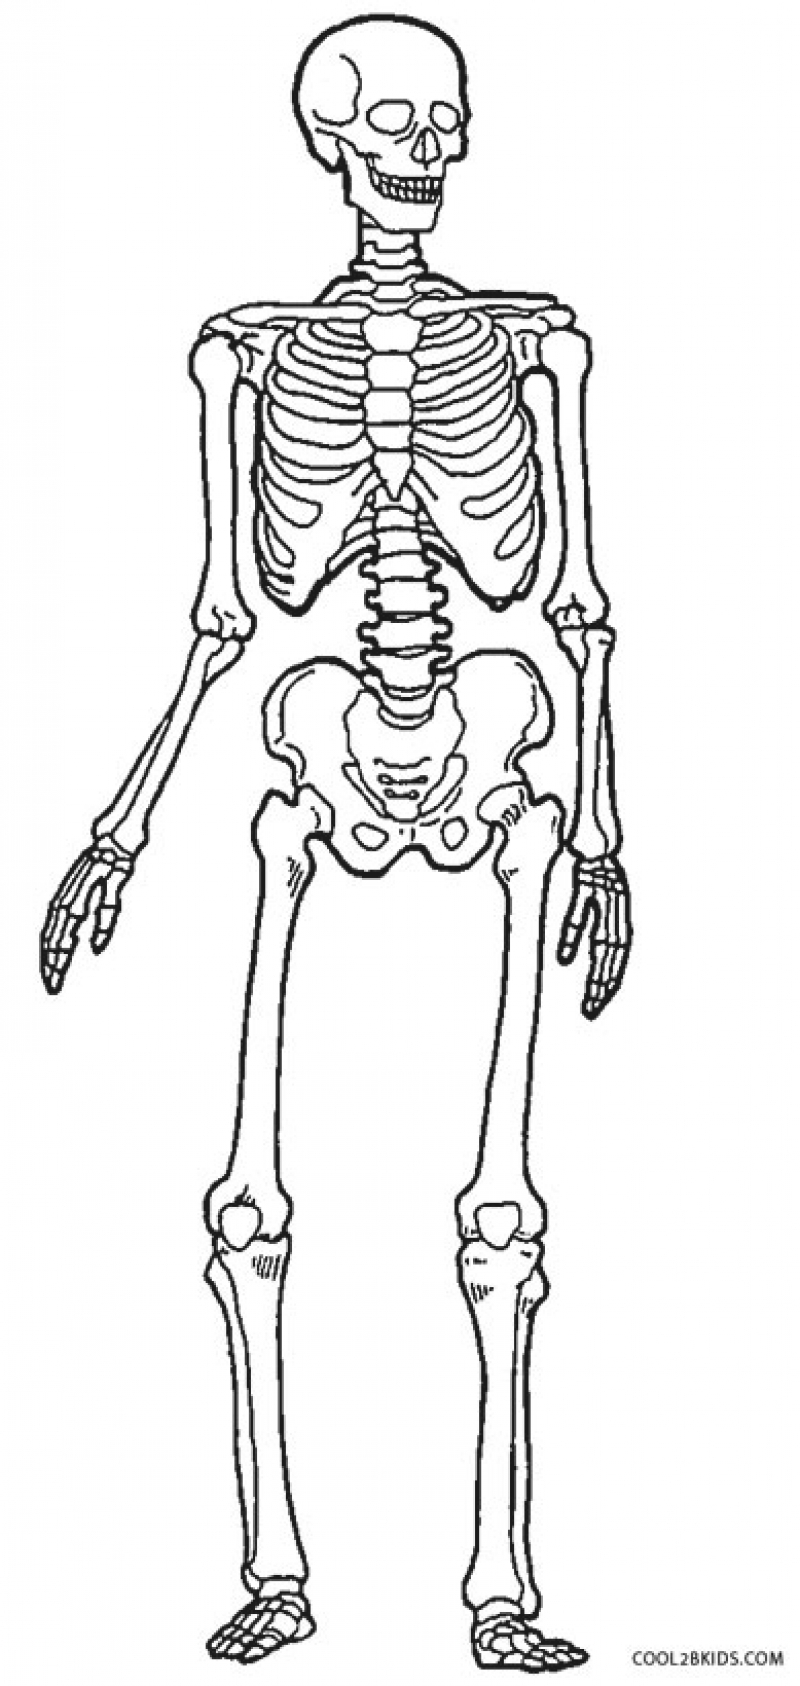 skeletal system coloring page human bones drawing at getdrawings free download skeletal system coloring page